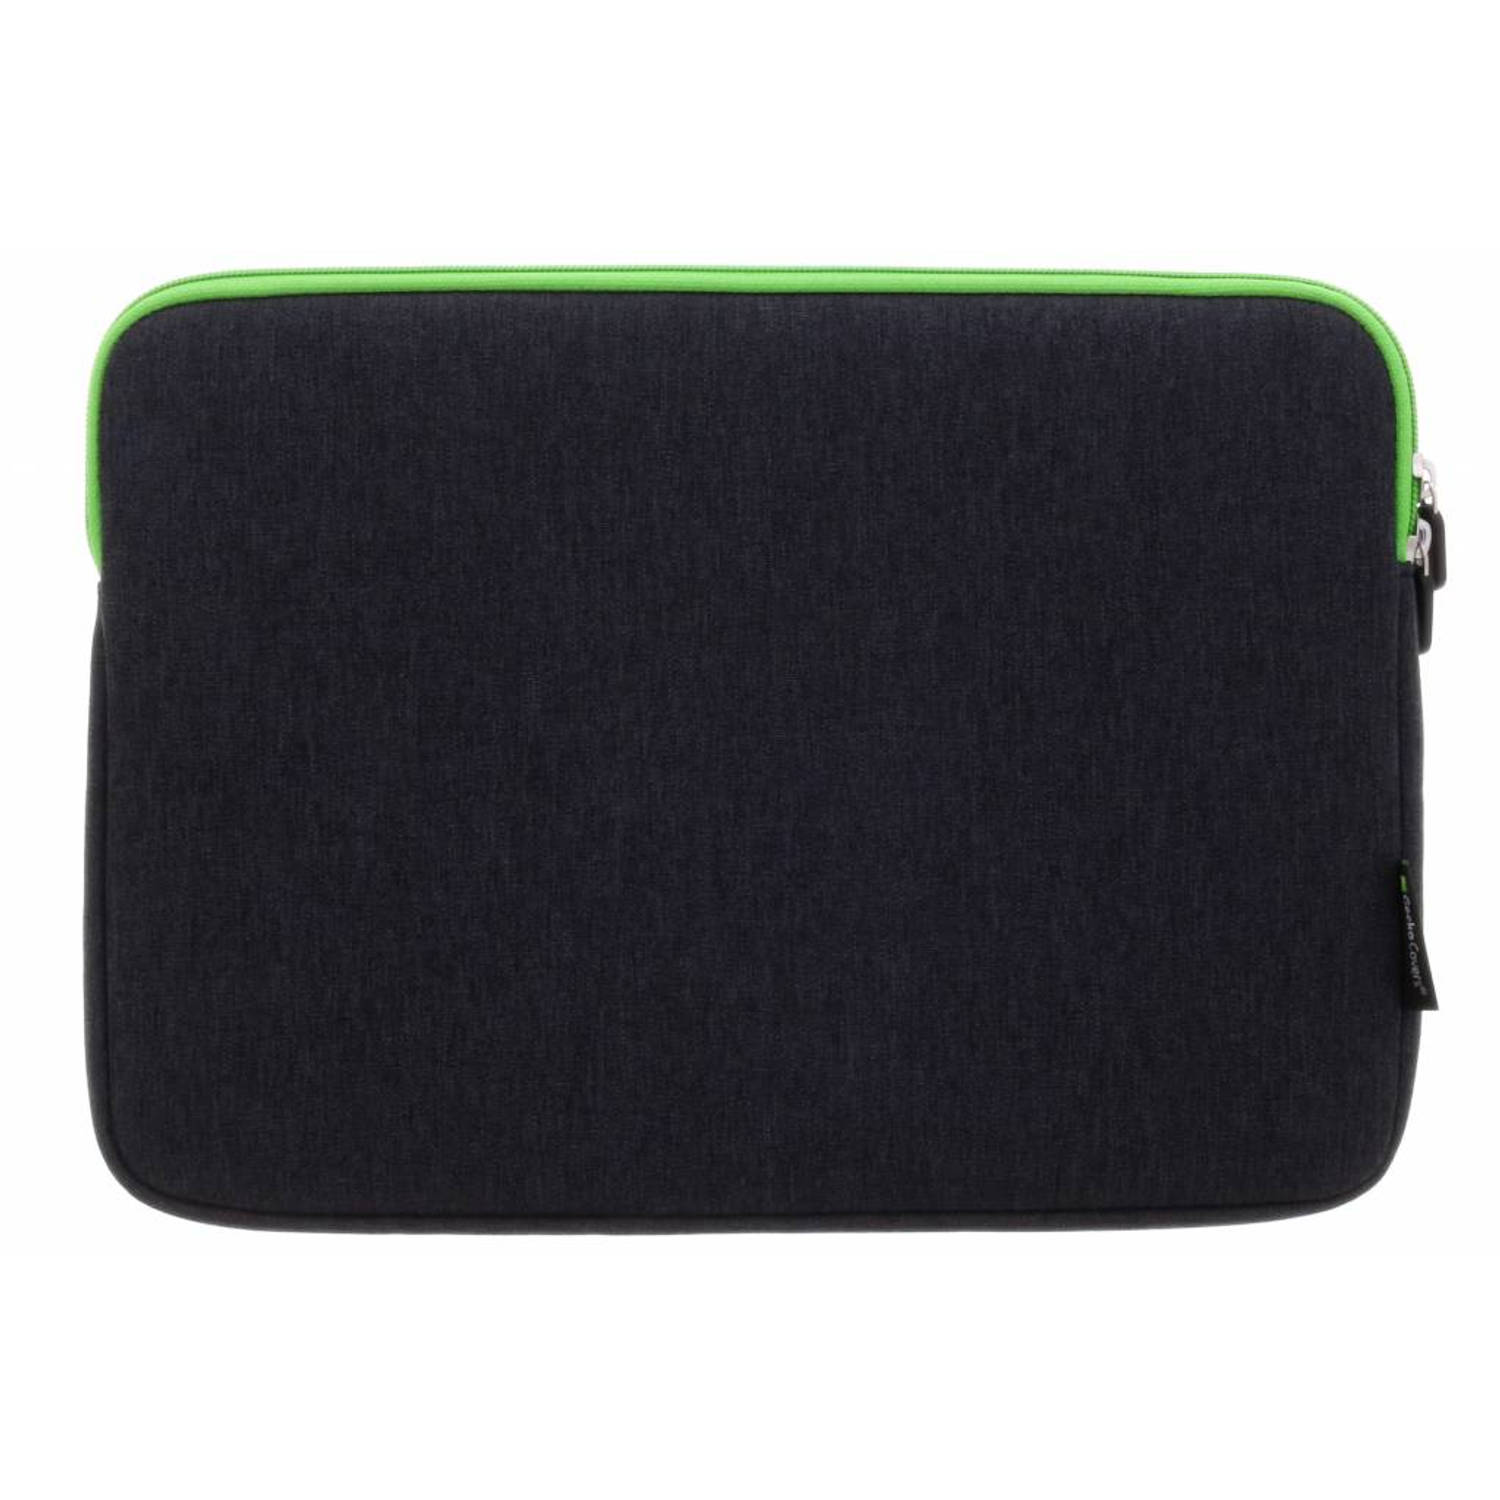 Gecko Covers Donkergrijze Universal Zipper Laptop Sleeve 11 12 Inch